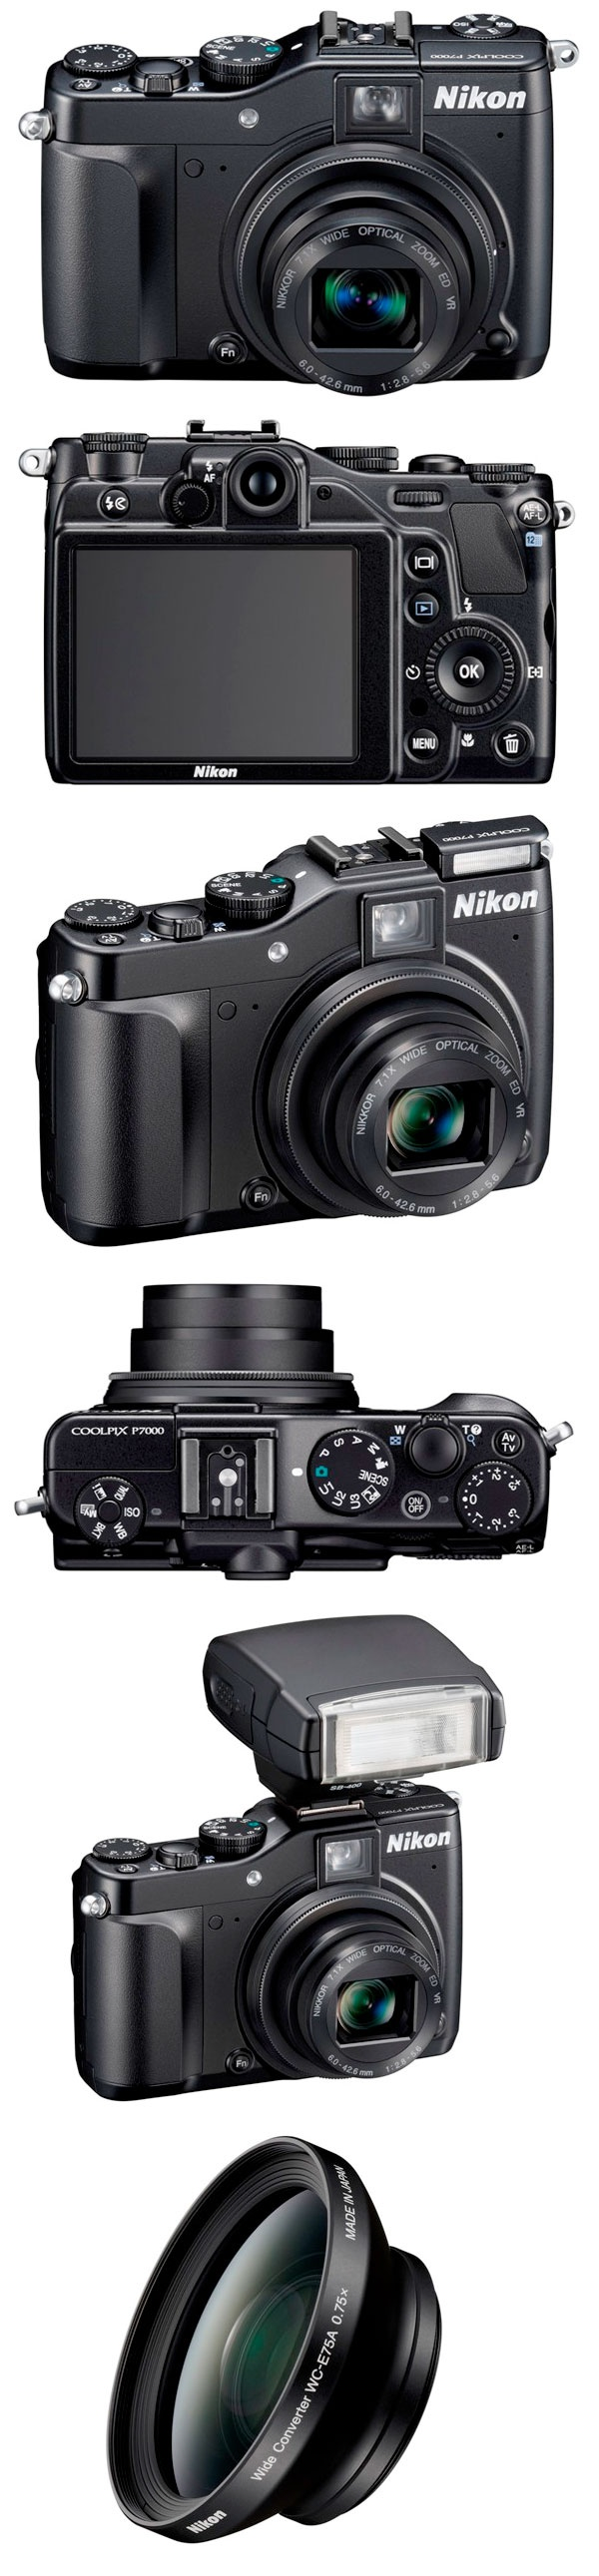 nikon coolpix P7000! $200 cheaper than the comparable P7100, point and shoot option to my DSLR... I NEED YOU.